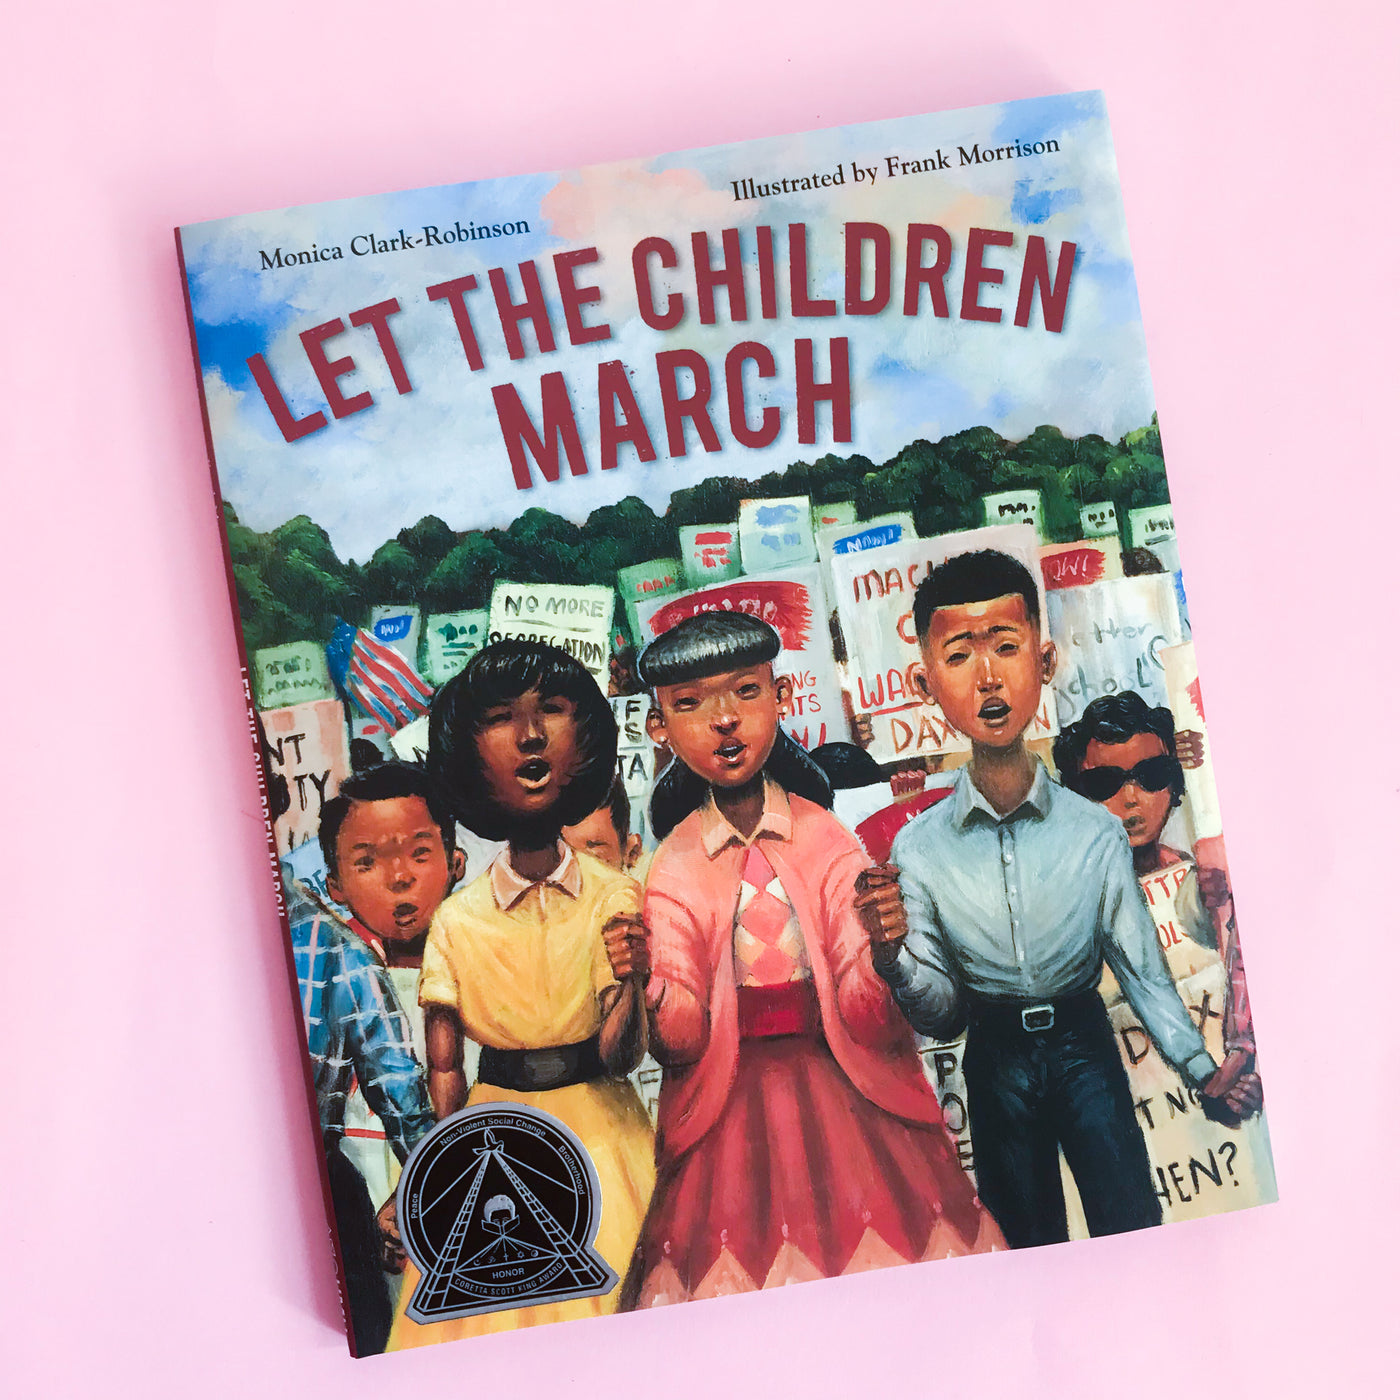 Let The Children March by Monica Clark-Robinson and Frank Morrison